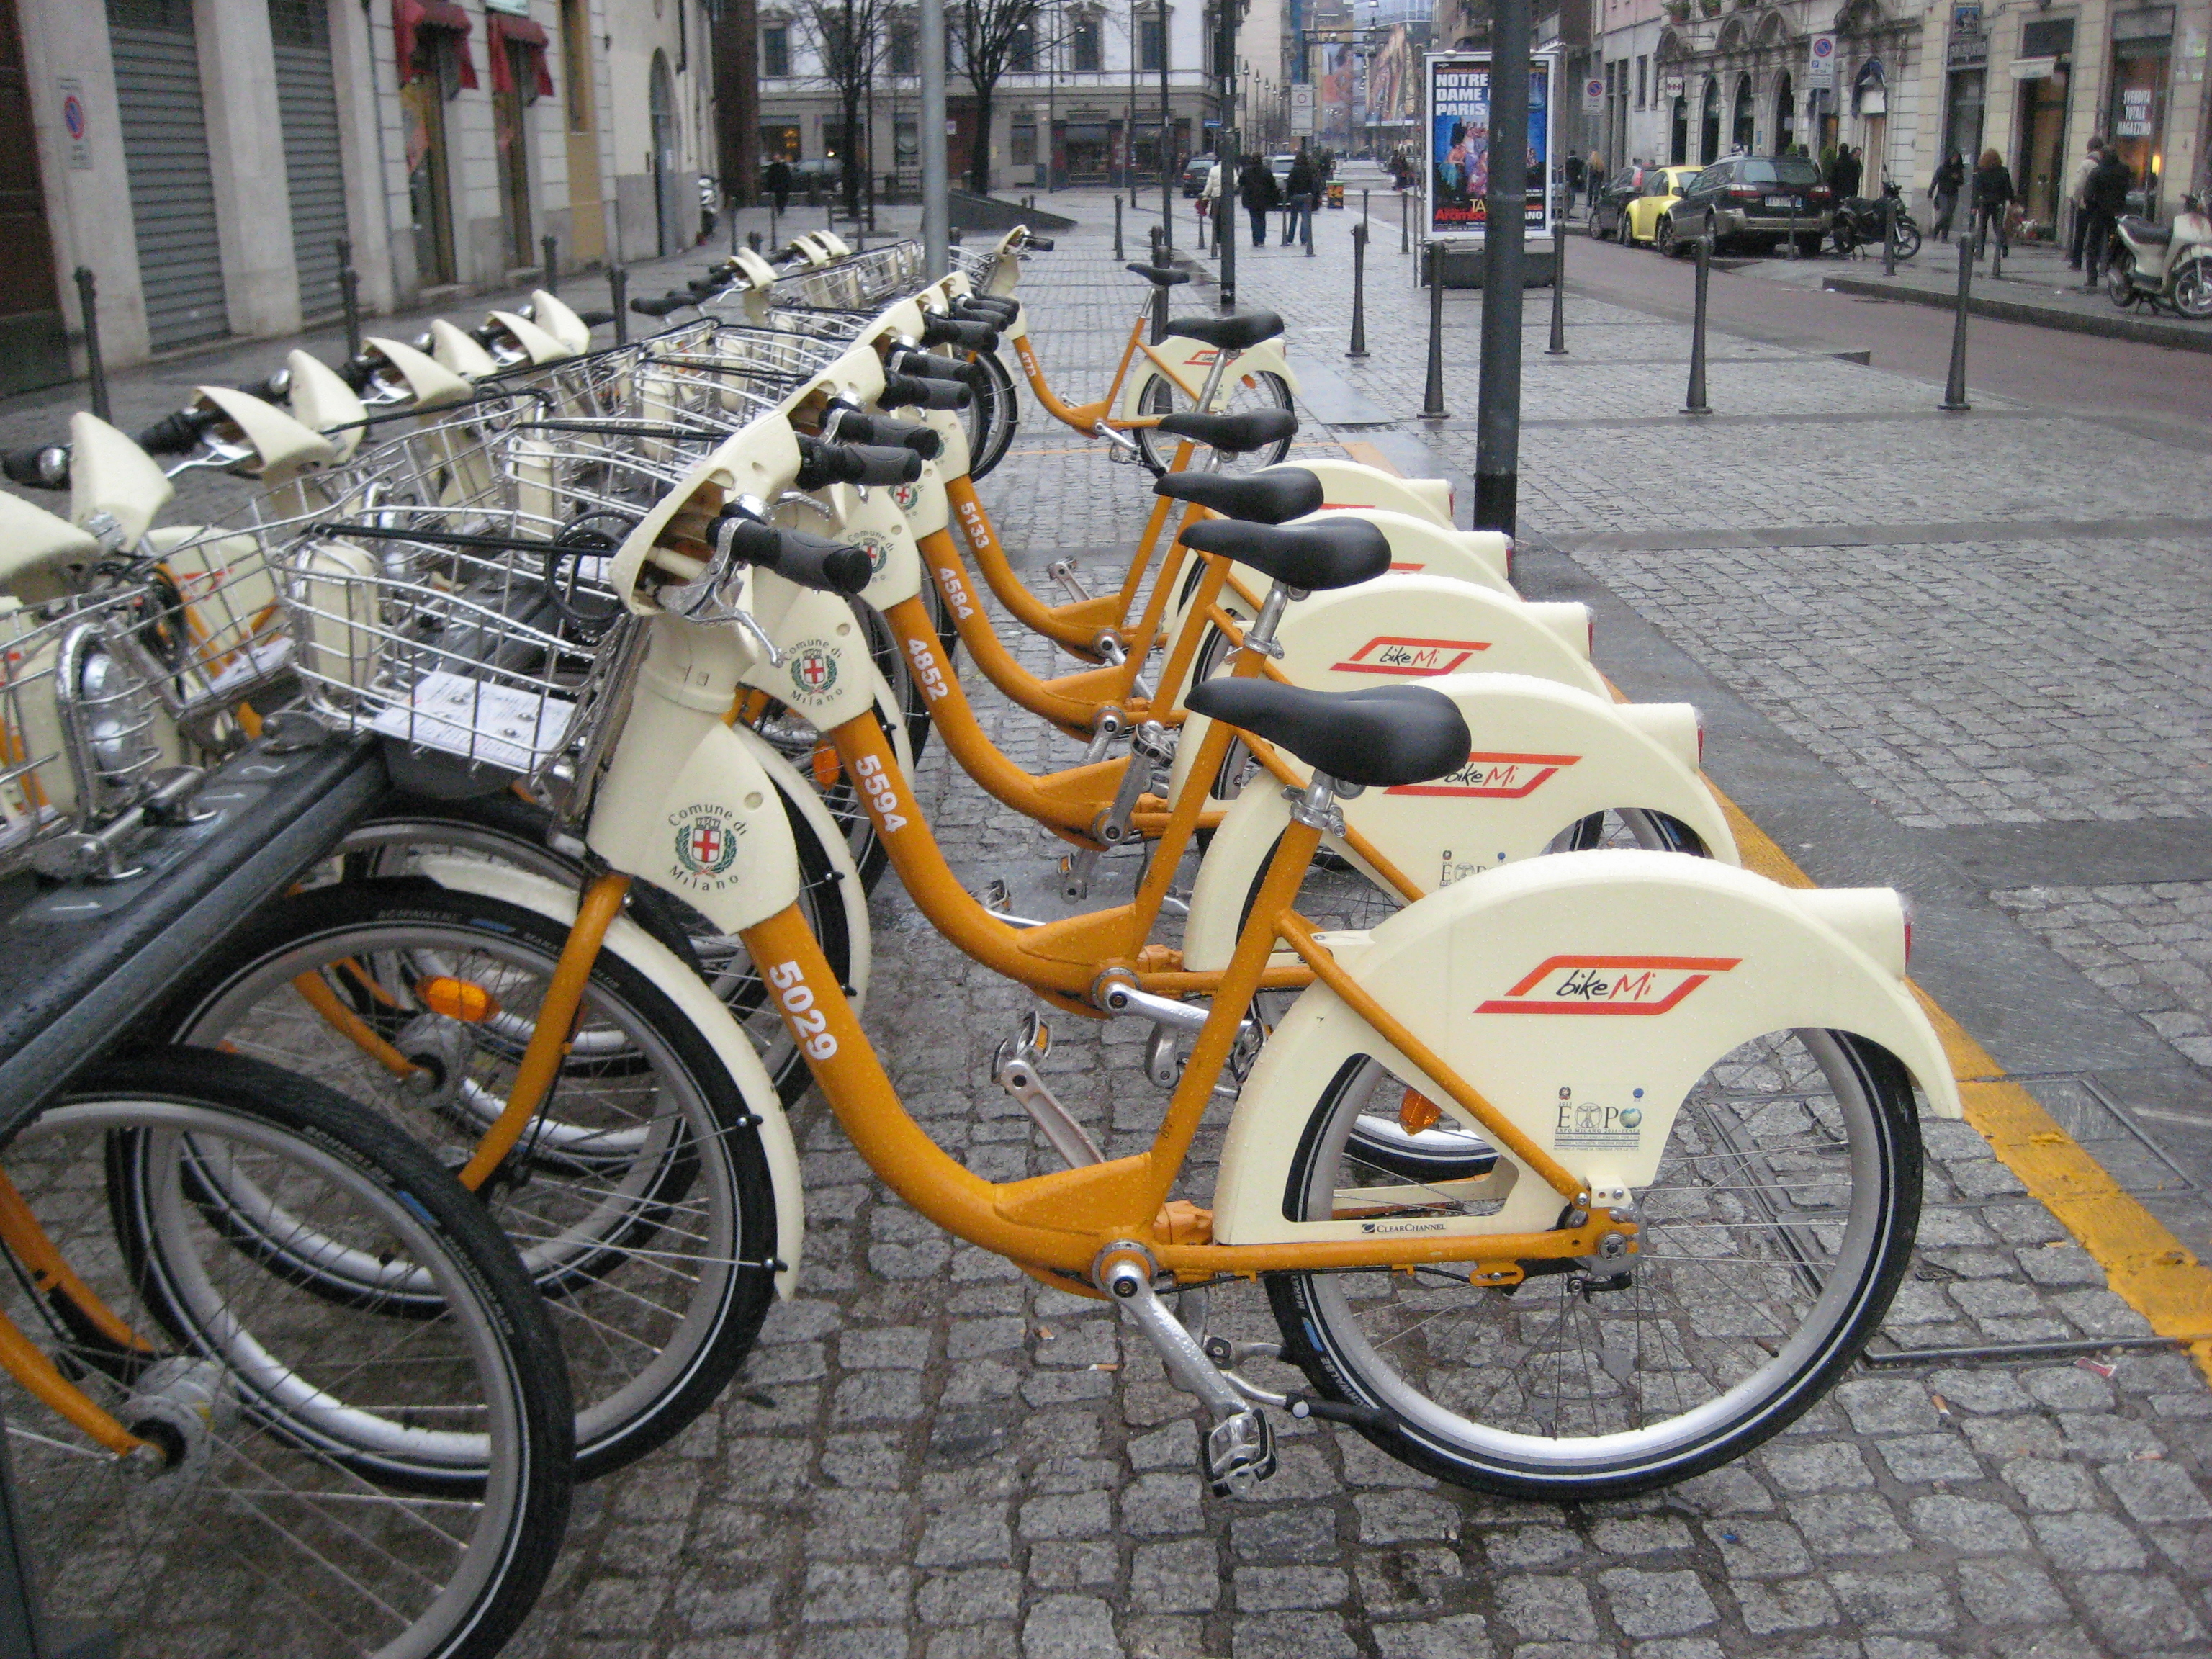 bike sharing Capital bikeshare takes pride in women's bike month new customers who download the app and enter the code girlup18 will receive a free ride with cabi and $1 will be donated toward providing bikes to help girls get to school.